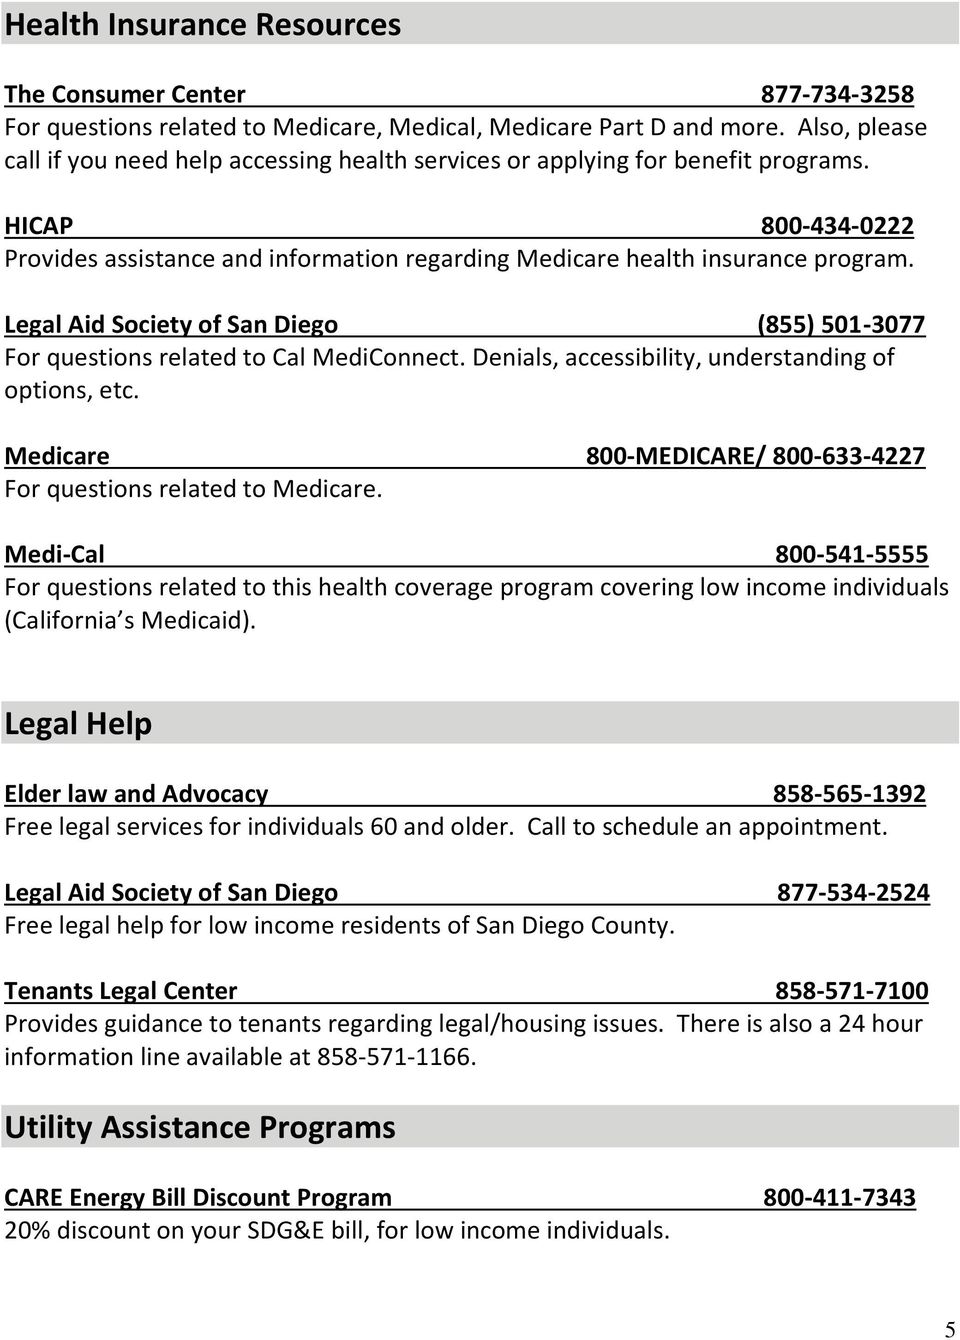 Legal Aid Society of San Diego (855) 501-3077 For questions related to Cal MediConnect. Denials, accessibility, understanding of options, etc.